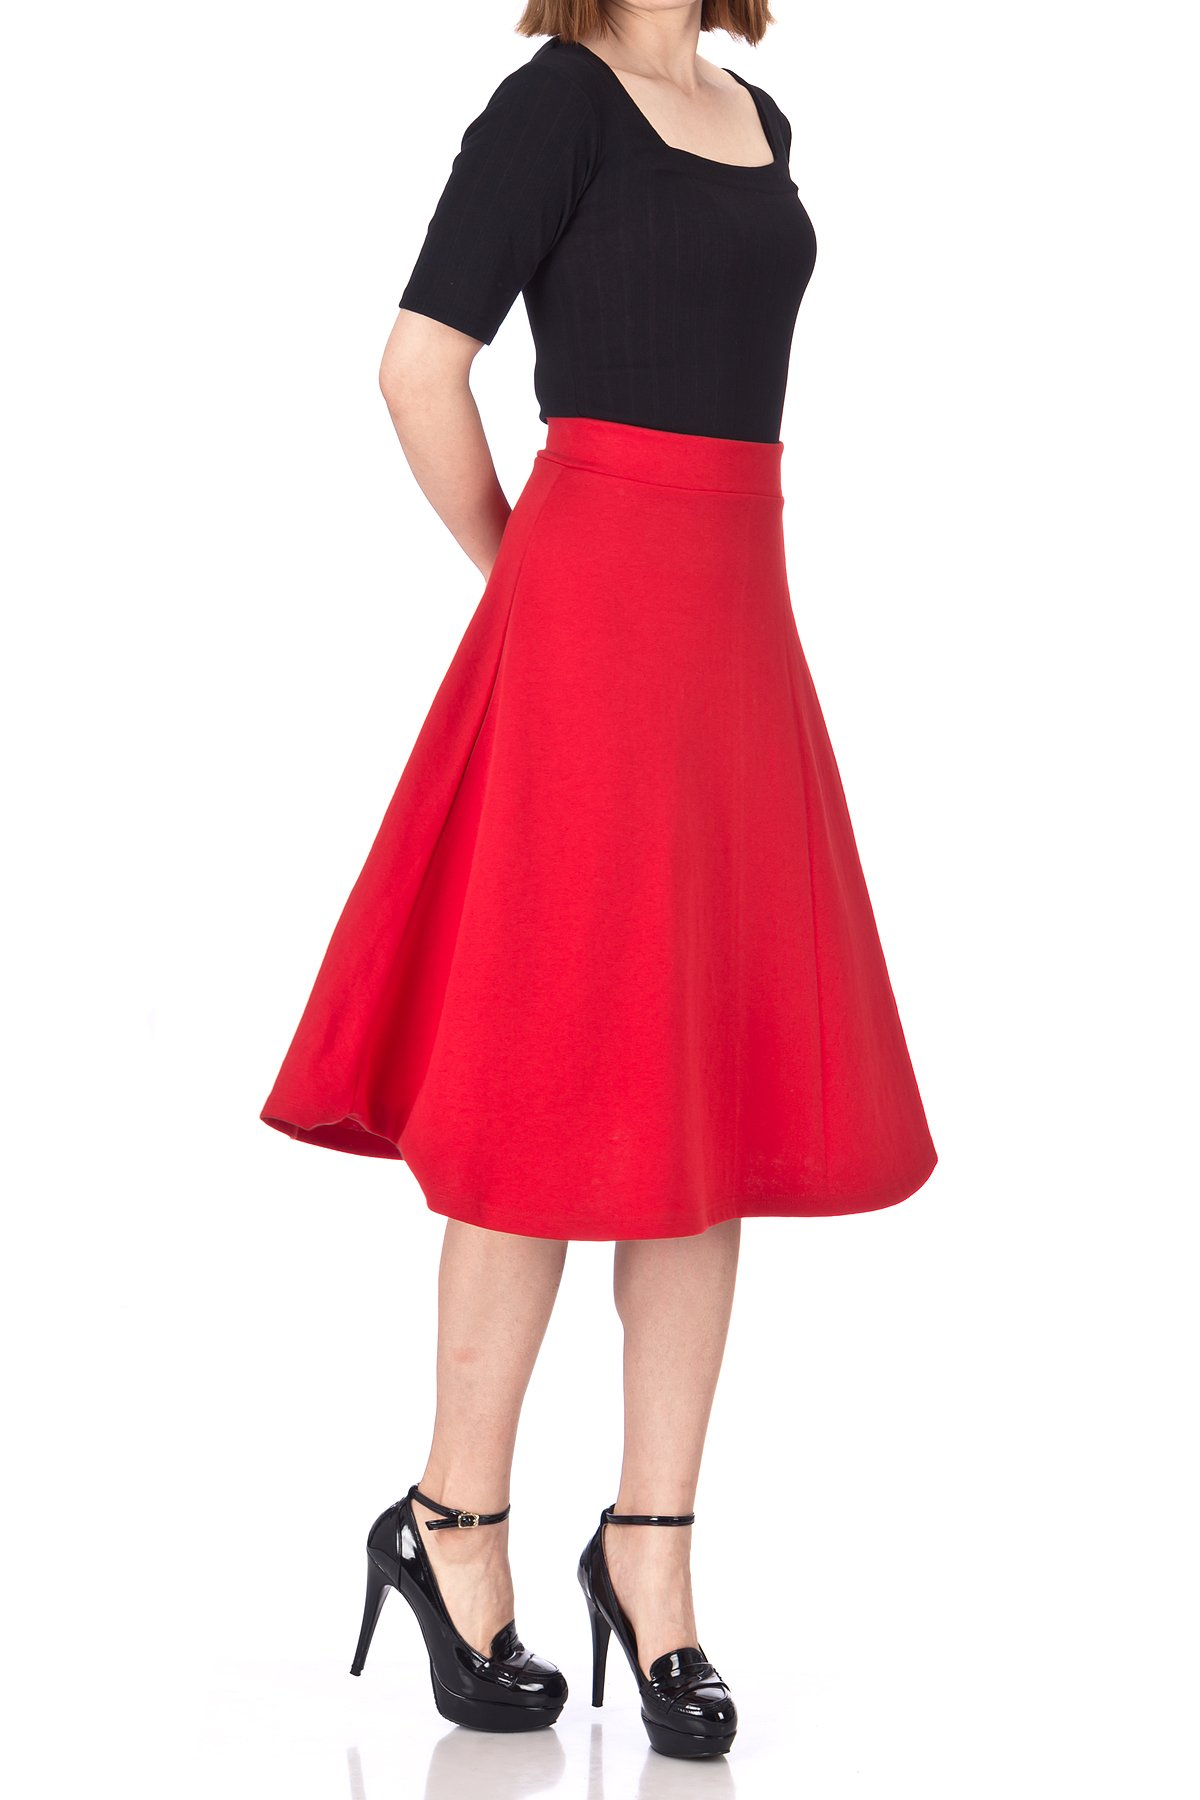 Everyday High Waist A Line Flared Skater Midi Skirt Red 05